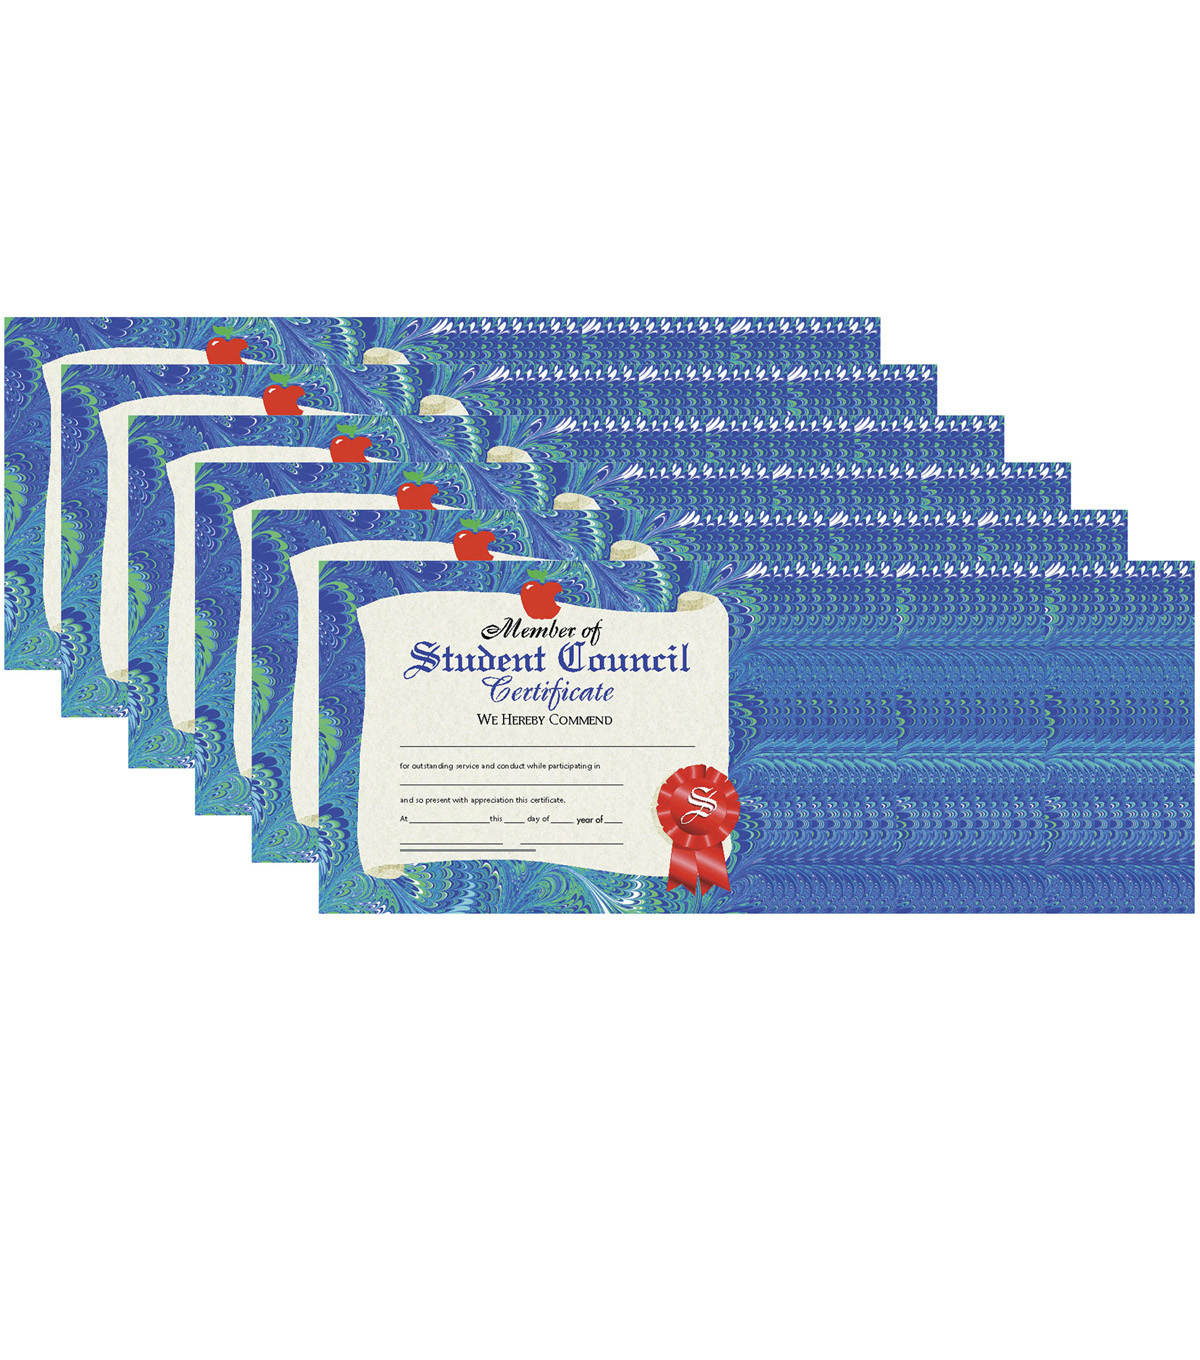 hayes member of student council certificate  30 per pack